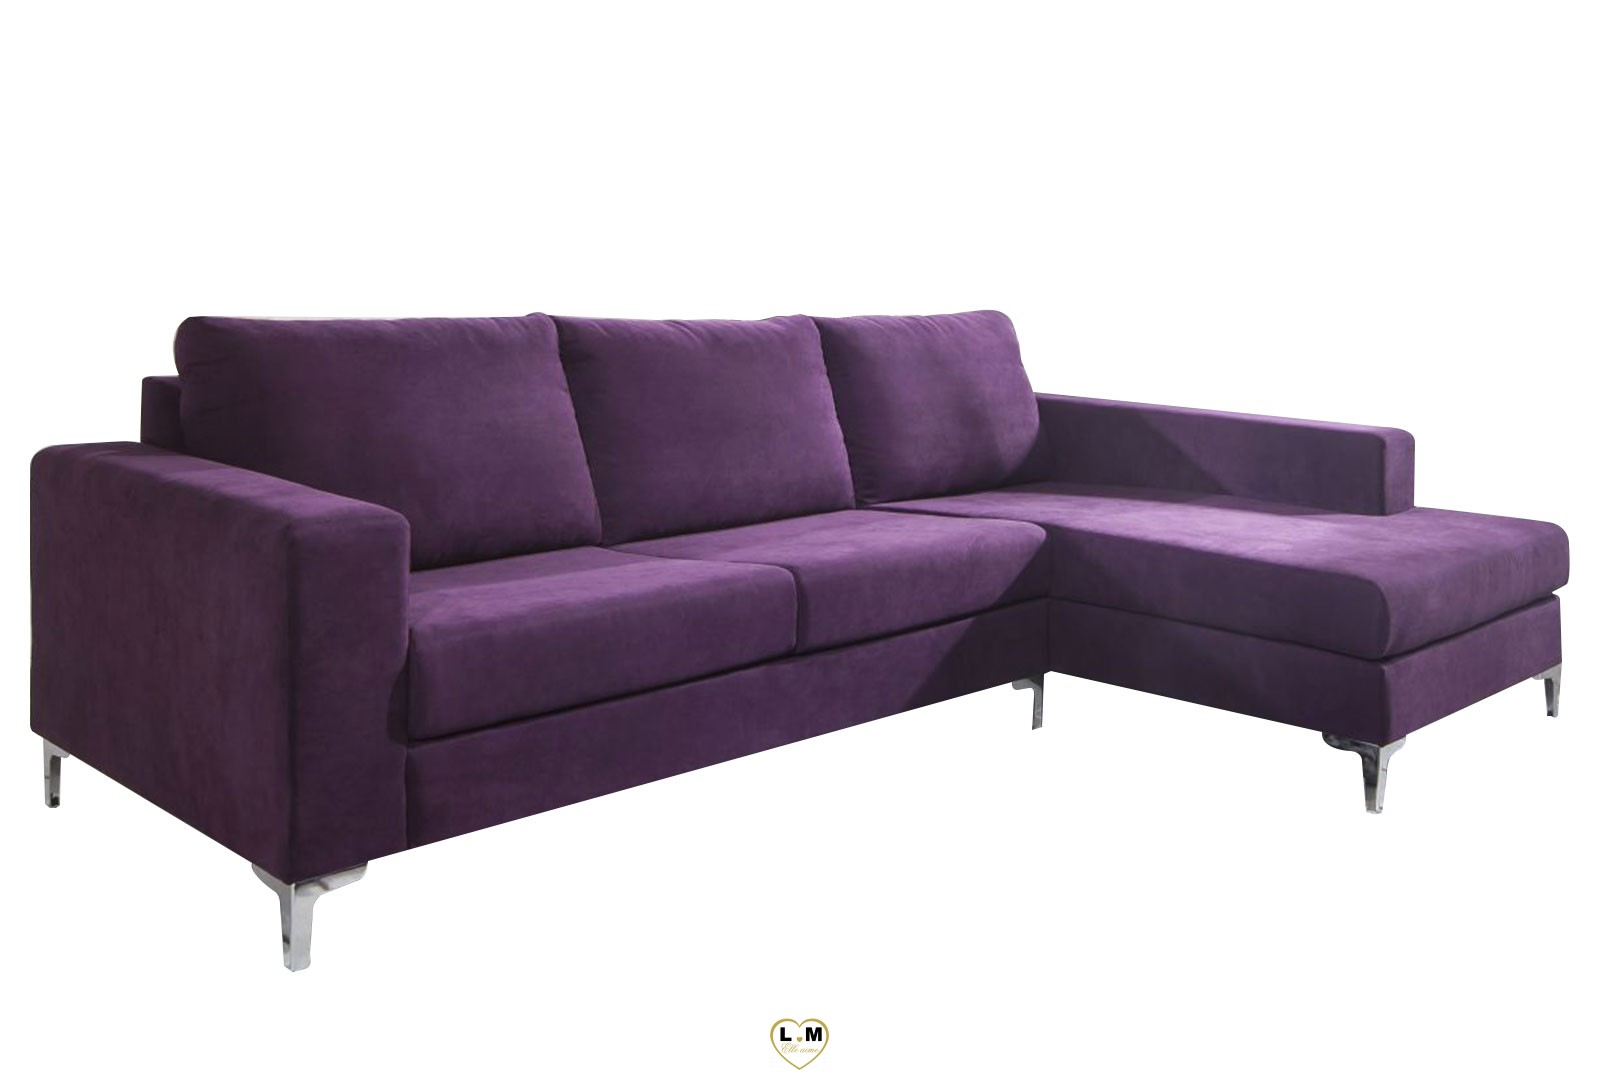 Prya violet canape angle tissus lignemeuble com for Canape tissus